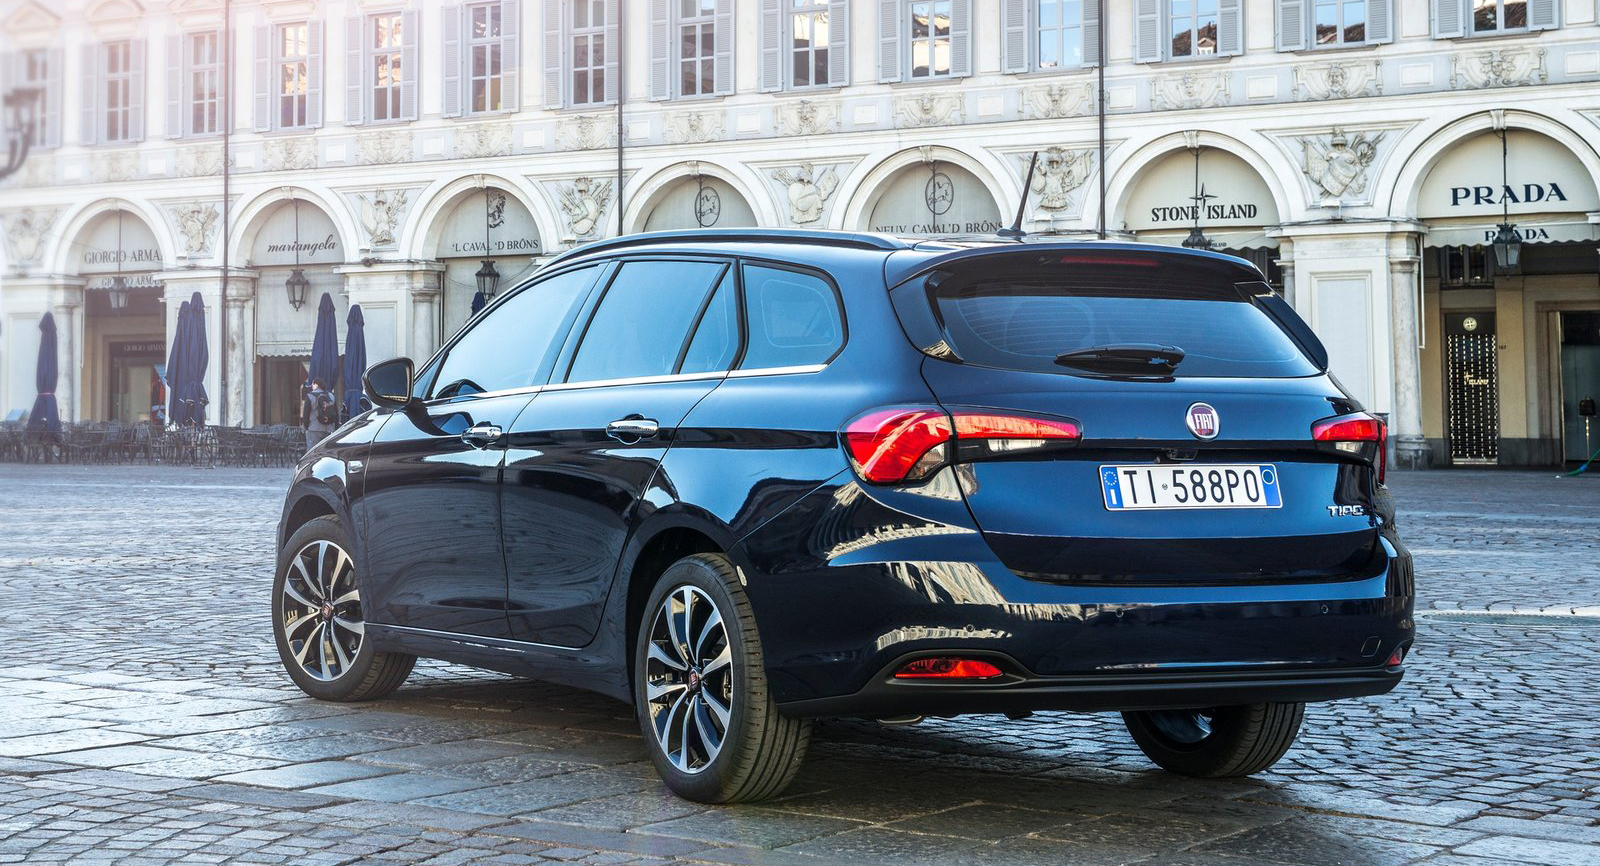 fiat tipo 5 door hatchback station wagon revealed image 487380. Black Bedroom Furniture Sets. Home Design Ideas